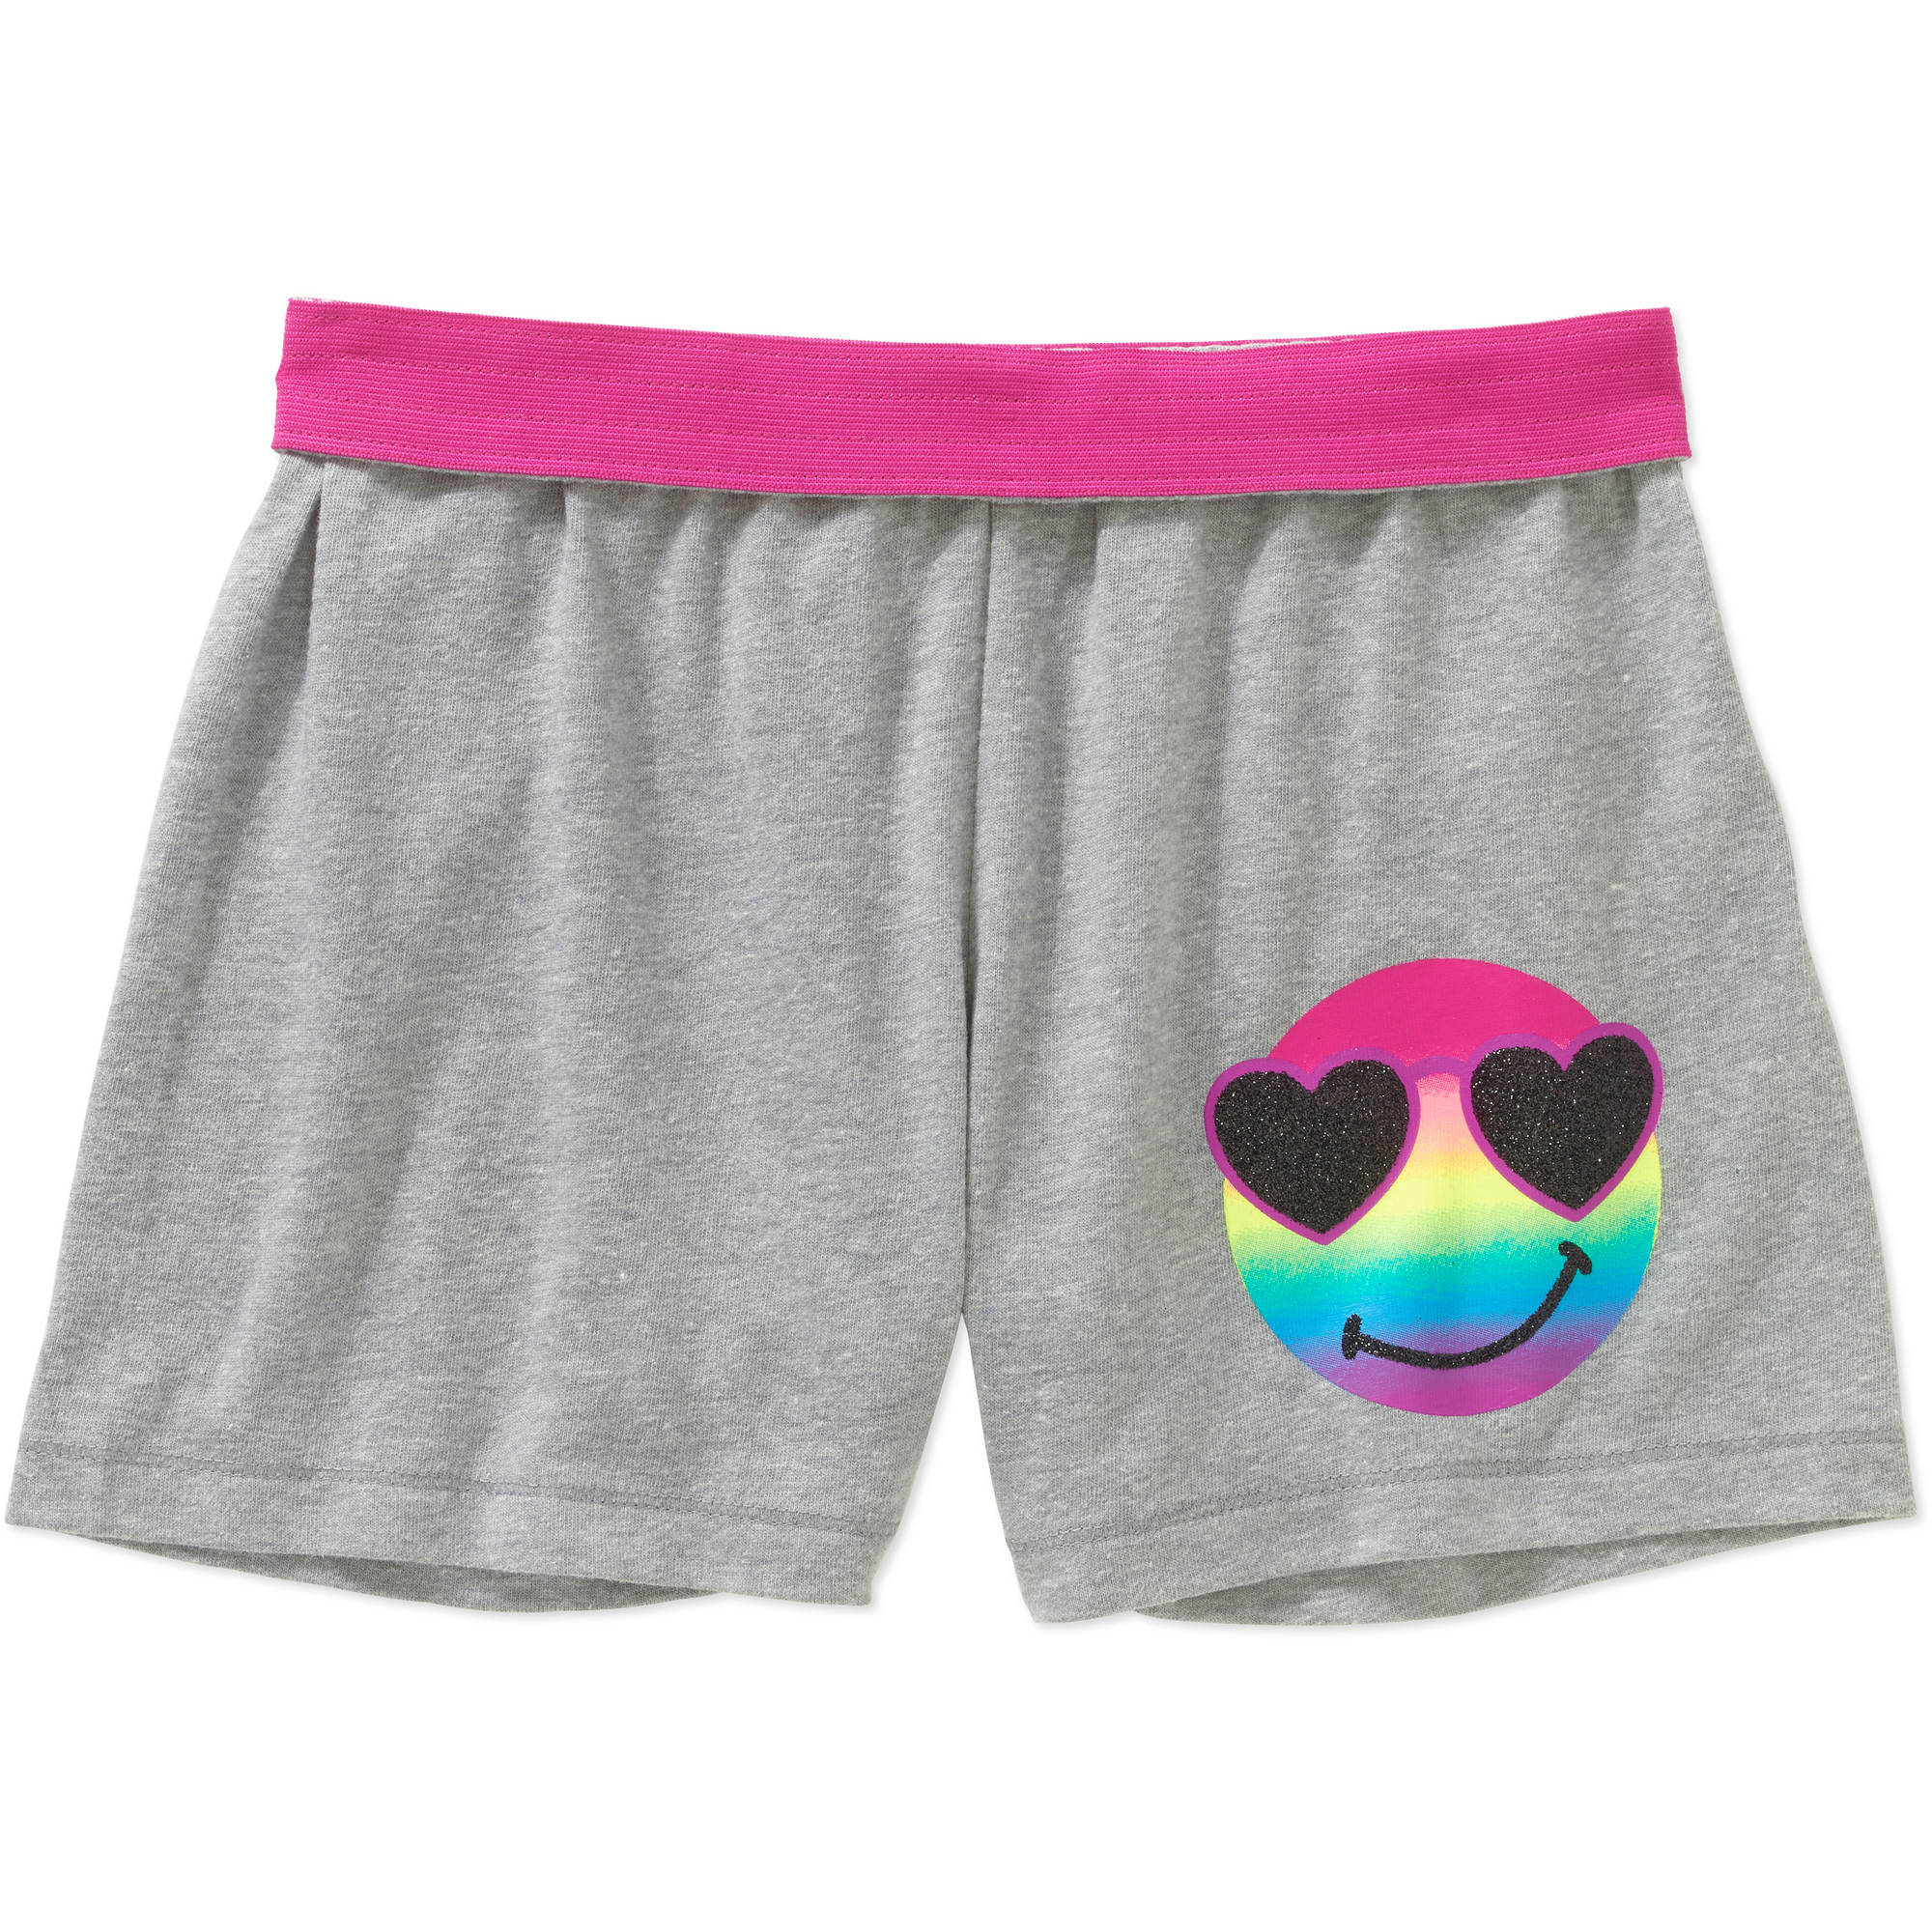 Girls' Faded Glory Graphic Shorts